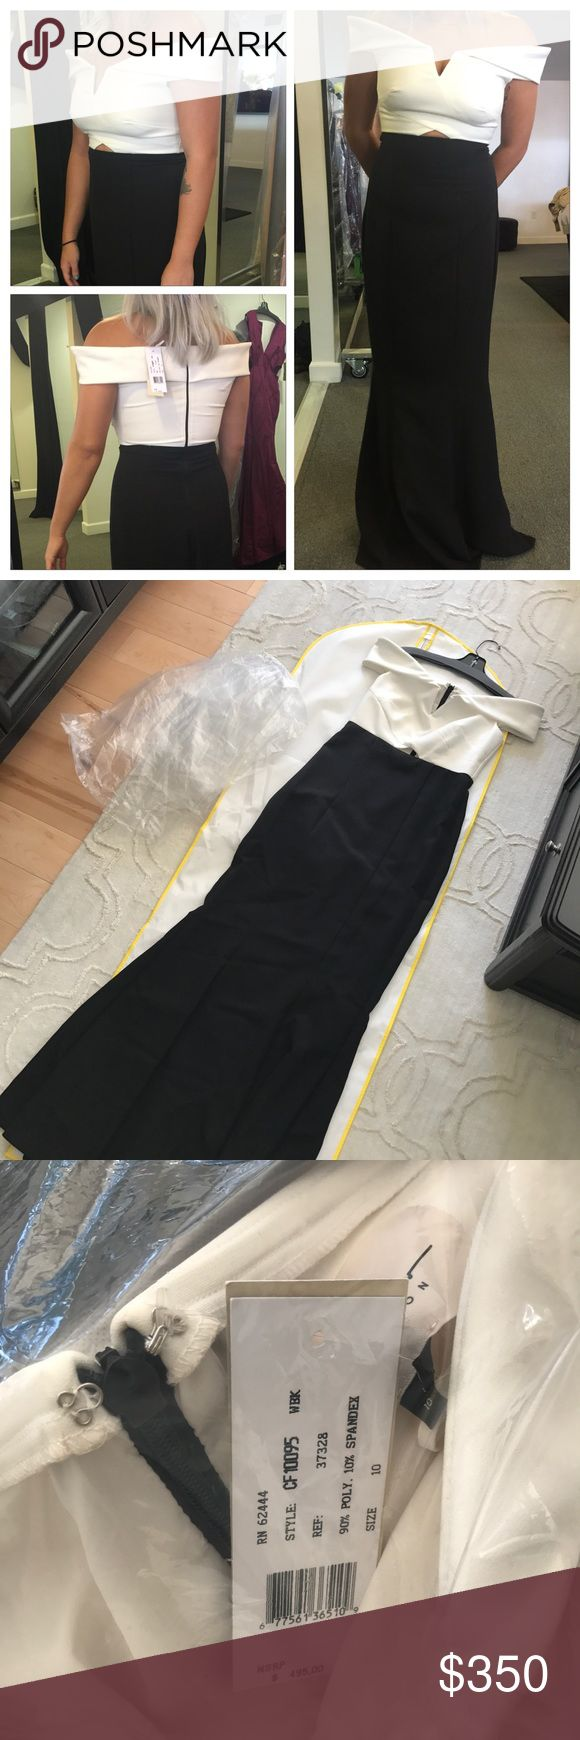 Nicole Miller off shoulder color block gown Sz 10 color block white and black gown by Nicole Miller. Hard to find, super chic yet comfortable gown that is simple but the same absolutely makes a statement. Was supposed to be for my maid of honor's dress but we had trouble locating more 😩 but our bad luck is ur gain! She's a beauty! Nicole Miller Dresses Prom